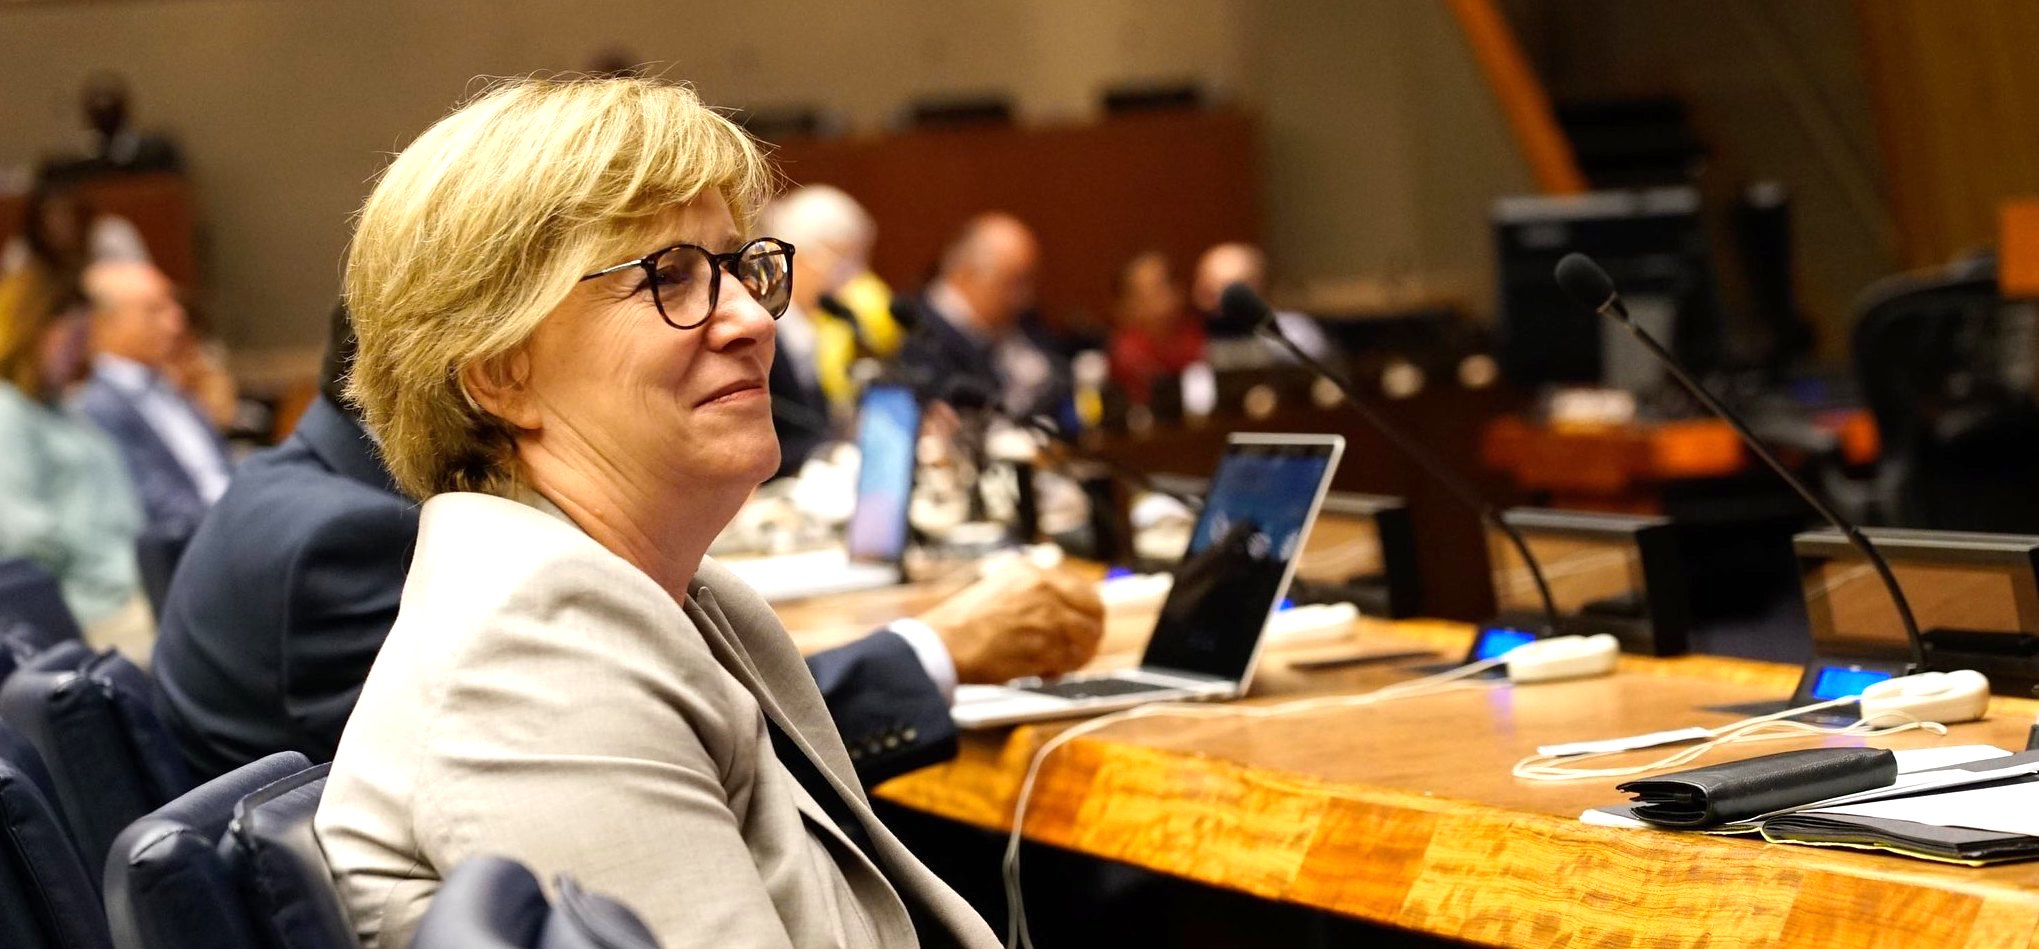 Q&A with Christiane Paulus from the German Ministry for Environment